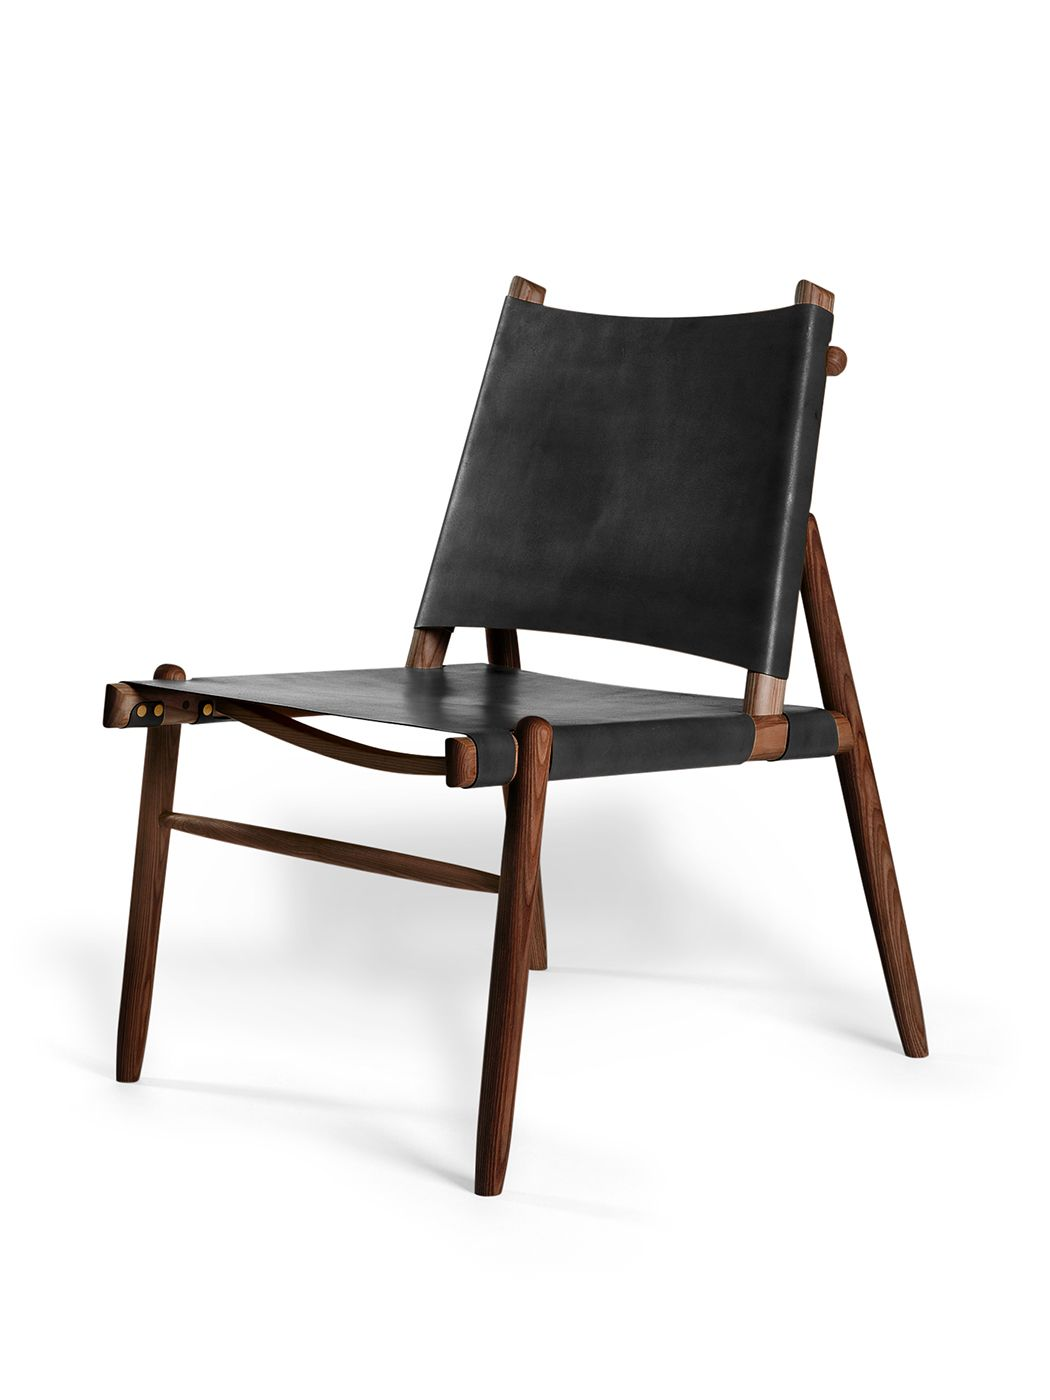 A beautiful piece of modern furniture designed and crafted by furniture maker will elworthy